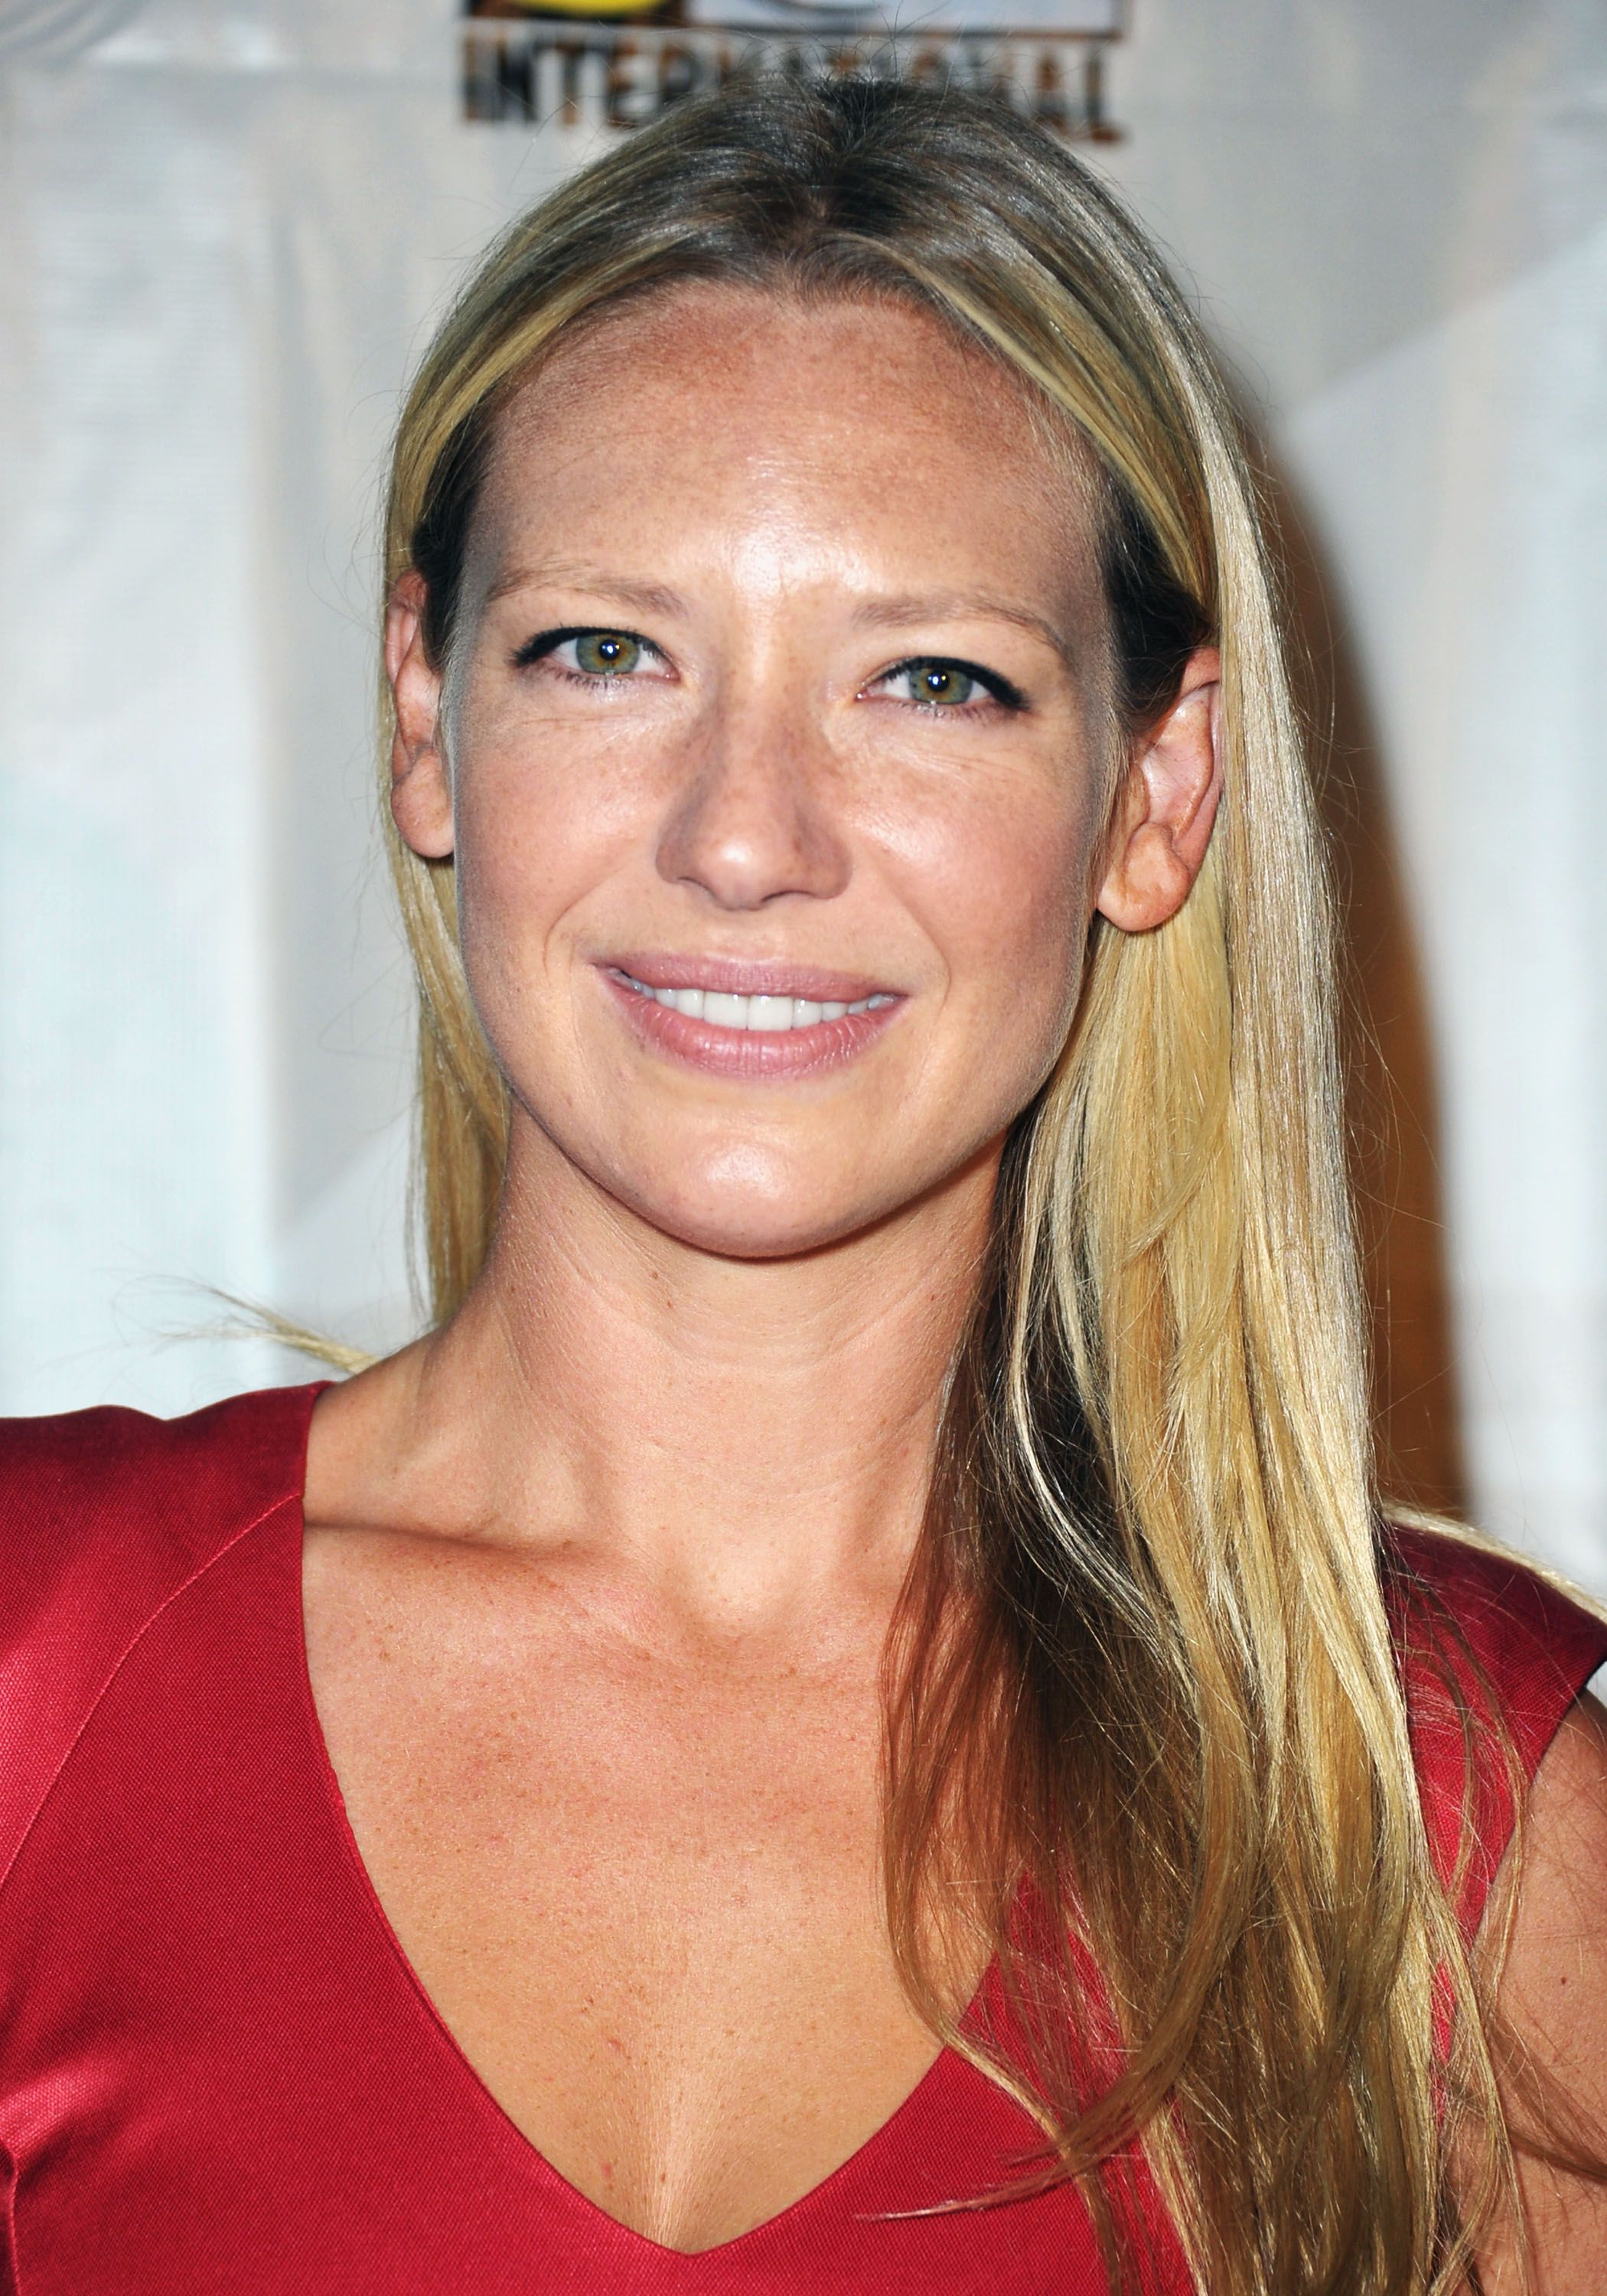 anna torv photoshootanna torv 2016, anna torv fringe, anna torv twitter, anna torv imdb, anna torv fan, anna torv wallpaper, anna torv esquire outtakes, anna torv news, anna torv photo, anna torv rupert murdoch, anna torv 2015, anna torv caitriona balfe, anna torv insta, anna torv instagram, anna torv hot photo, anna torv husband, anna torv photoshoot, anna torv marriage, anna torv vk, anna torv blake lively